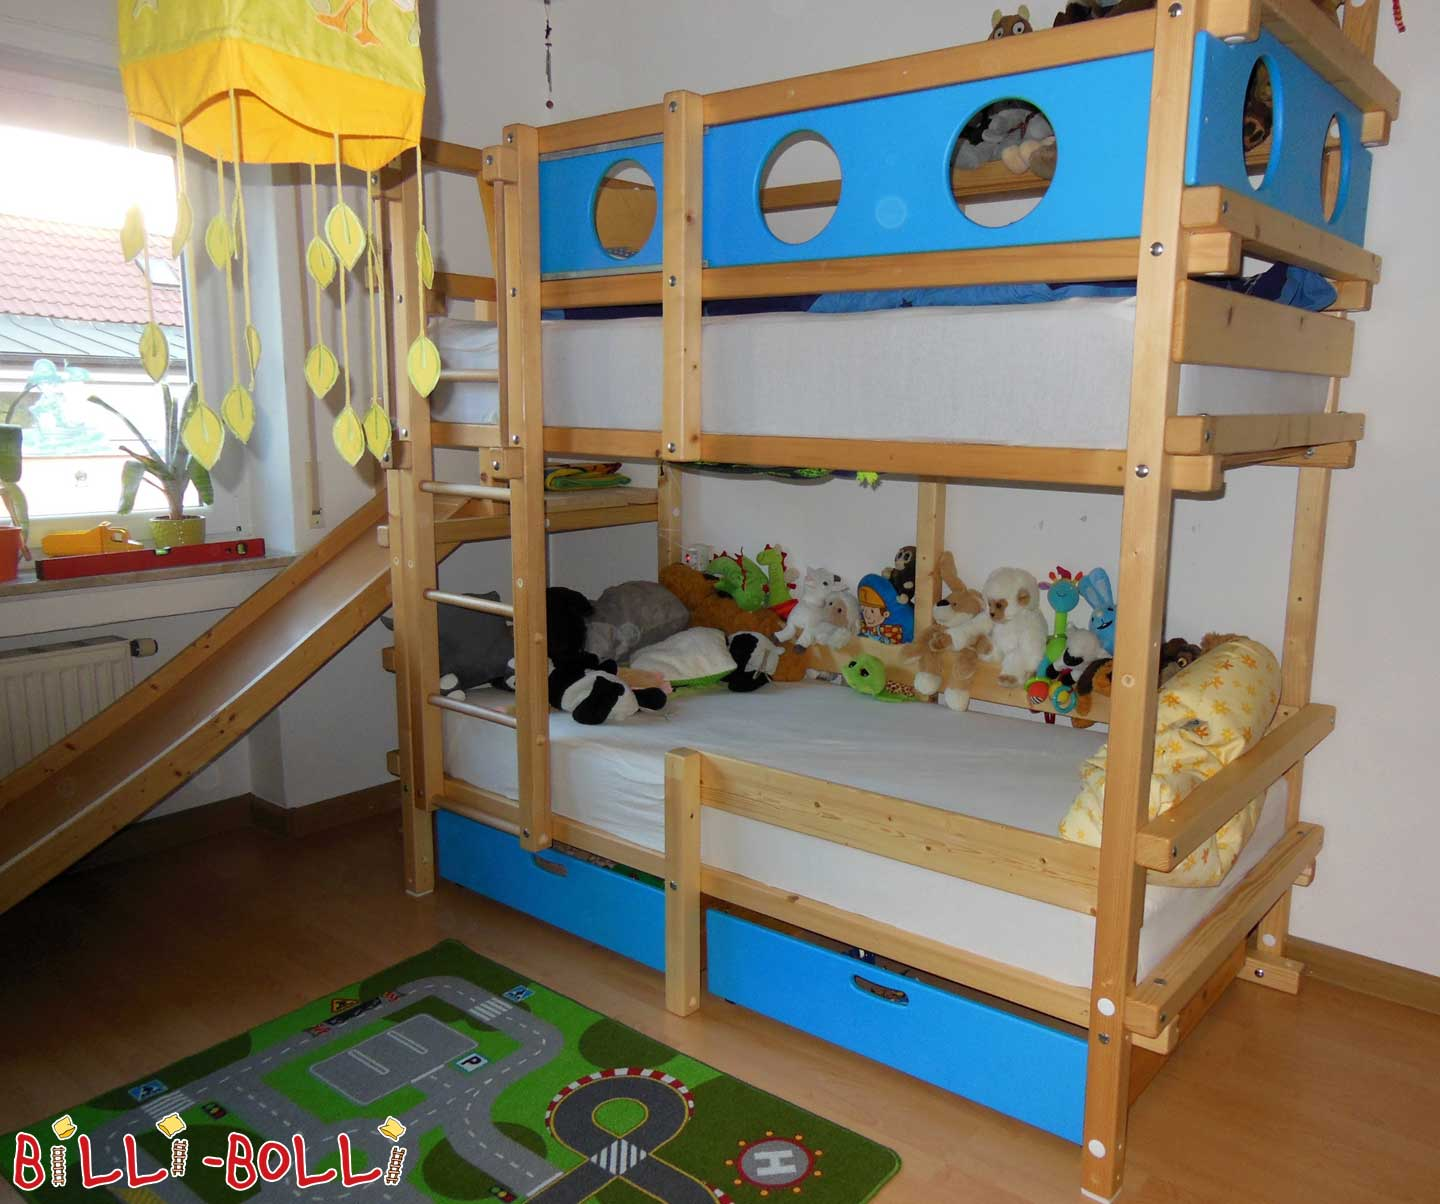 Untreated bunk bed 90 x 200 cm, spruce (second hand bunk bed)